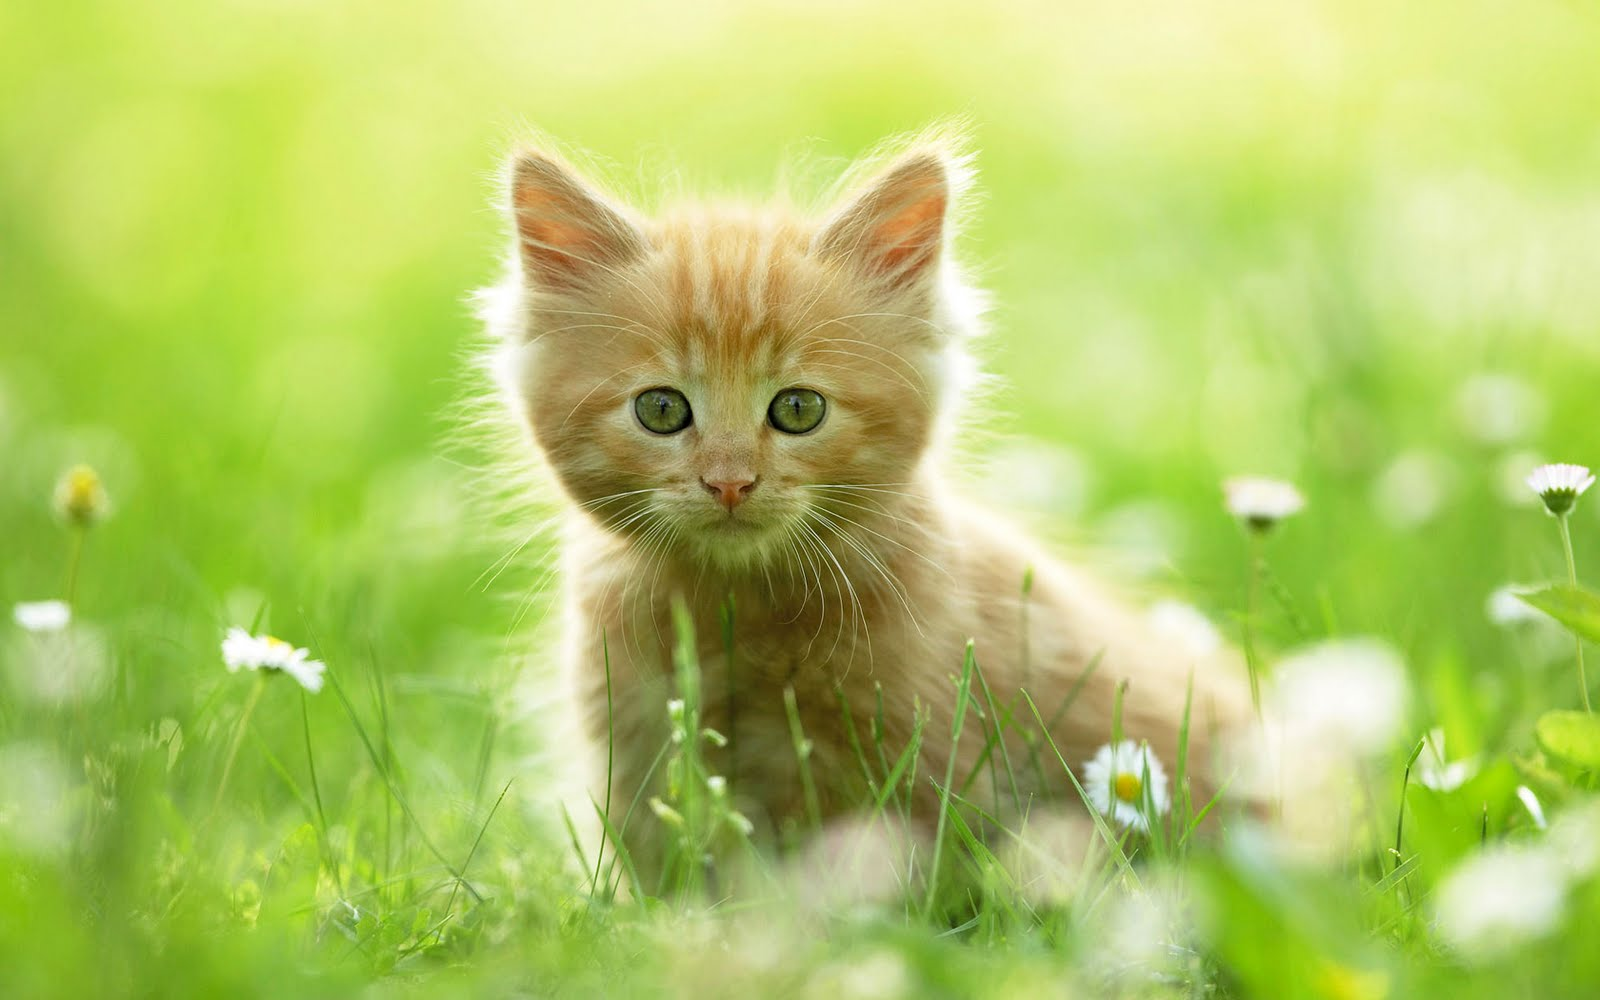 wallpapers fair: amazing fun cute cat wallpaper hd image free download